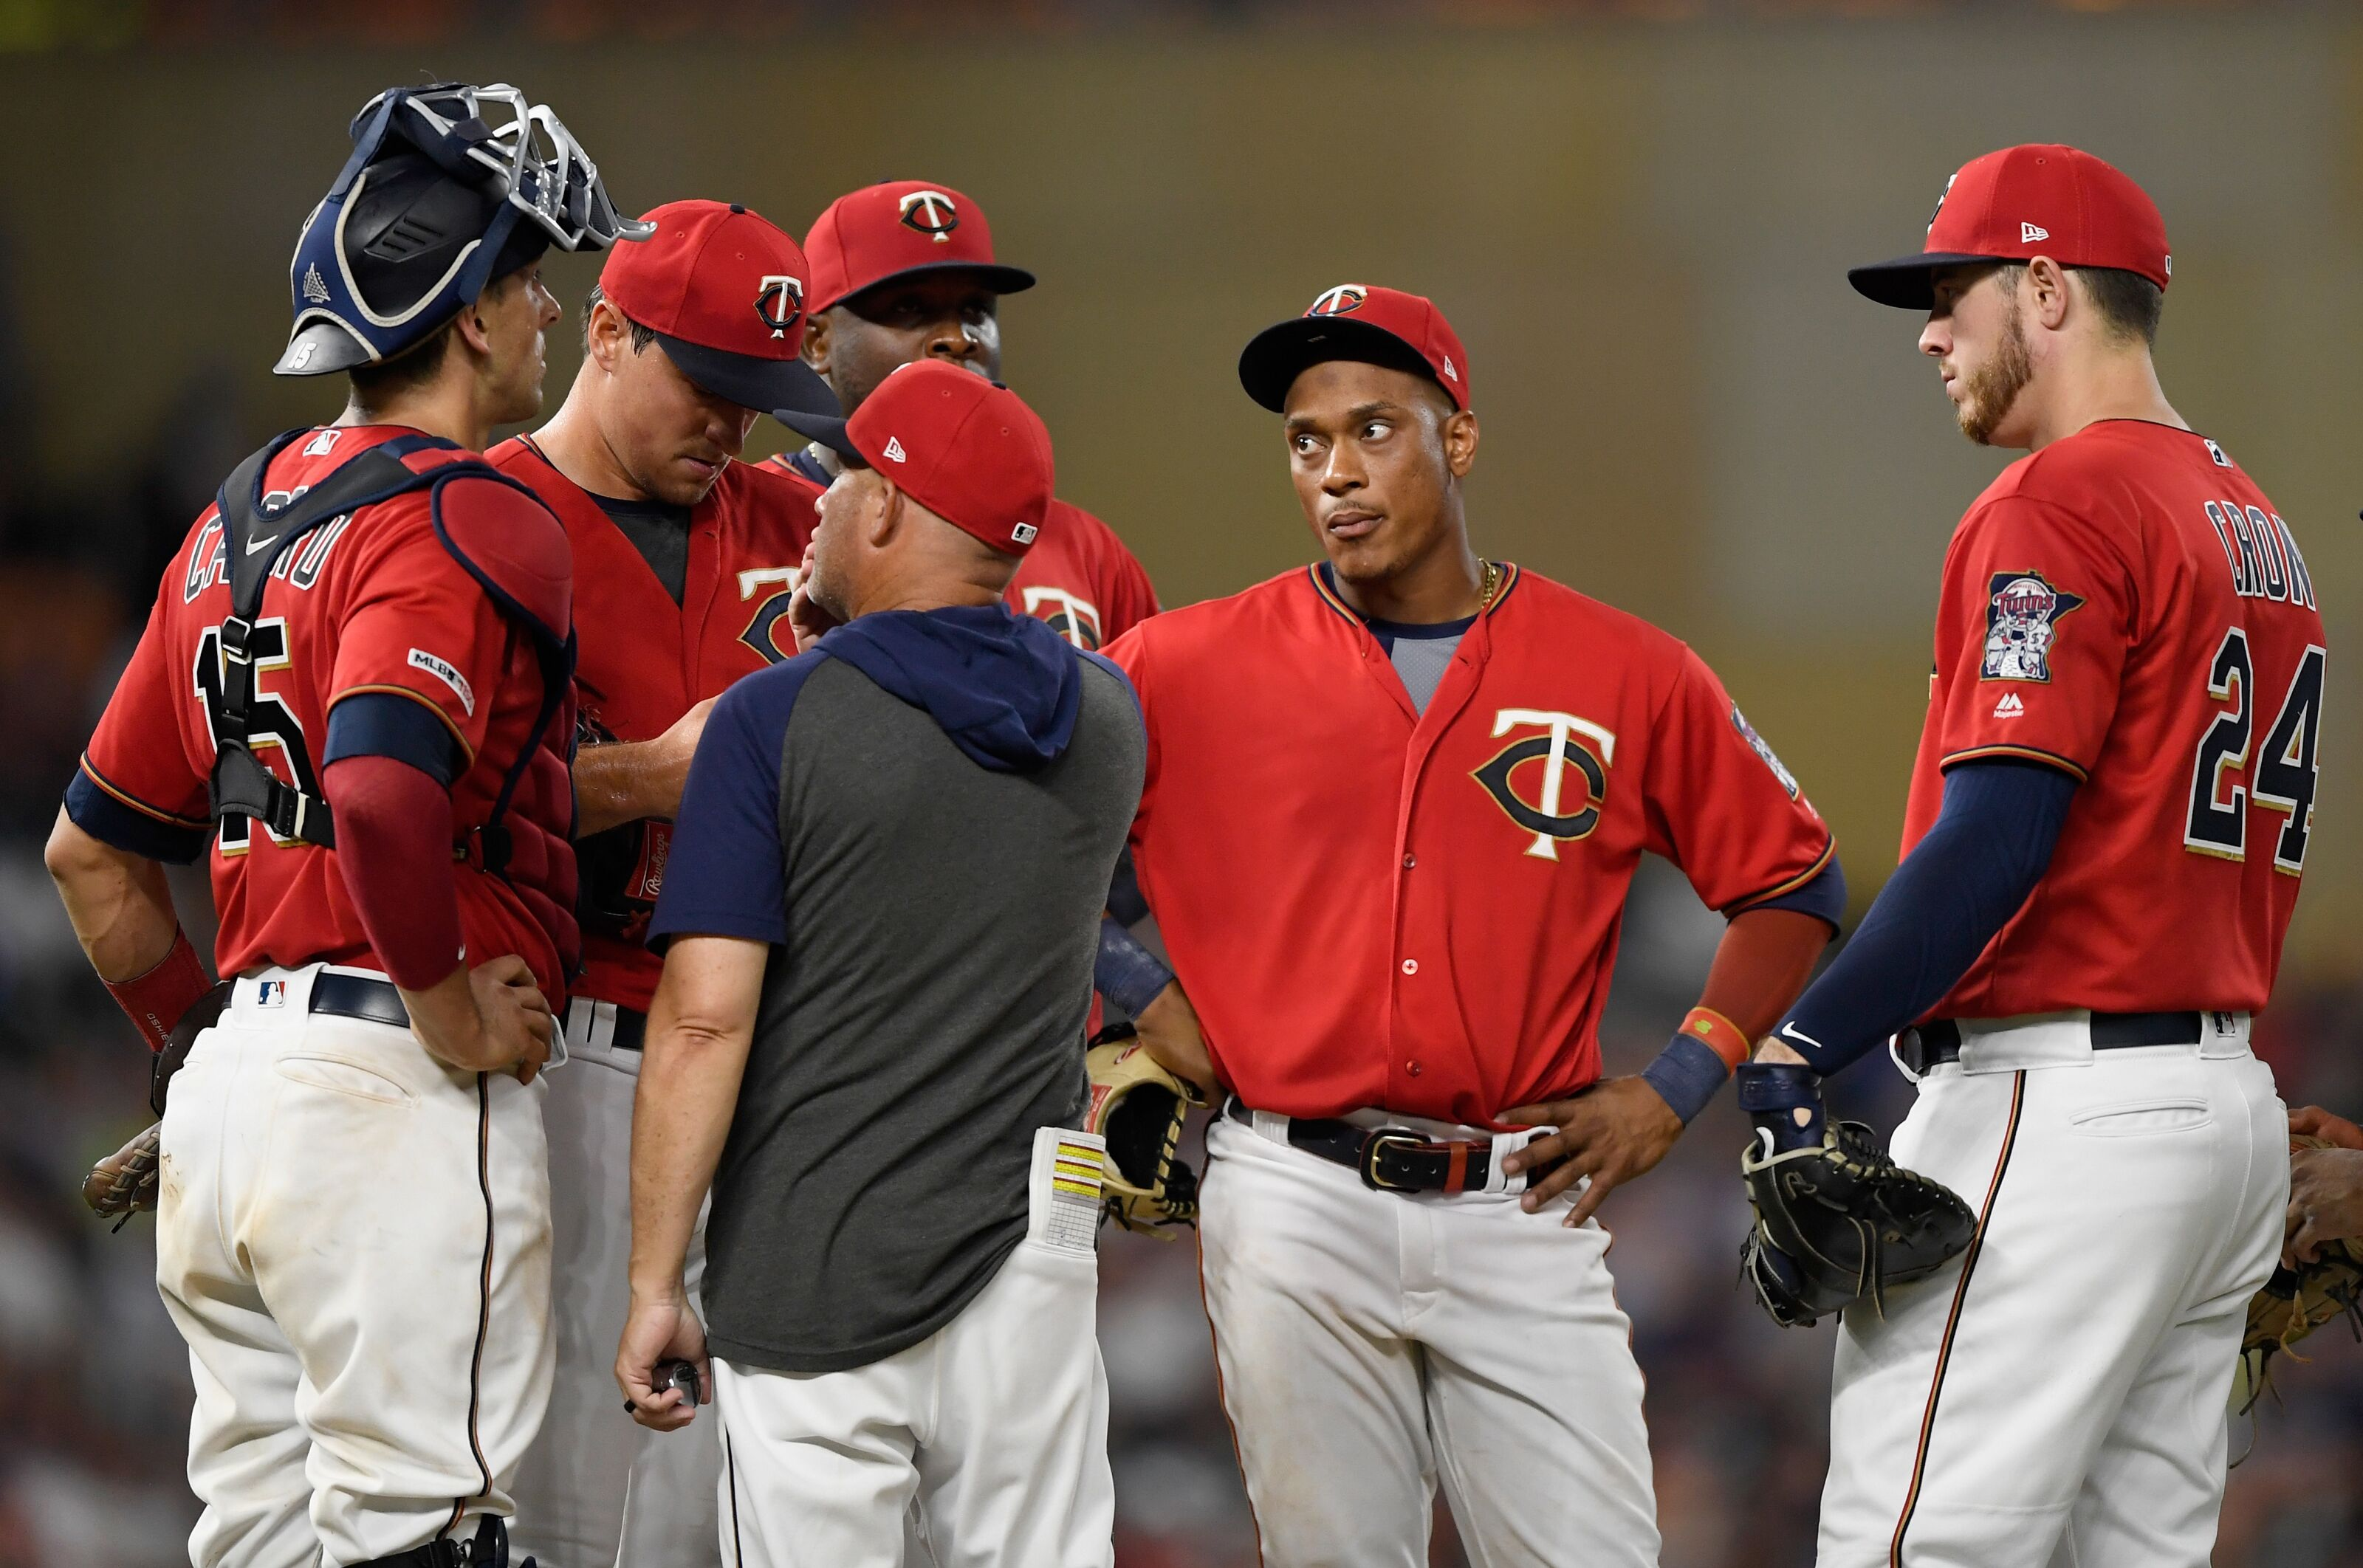 Minnesota Twins postgame report: Pitching falters again in loss to Athletics